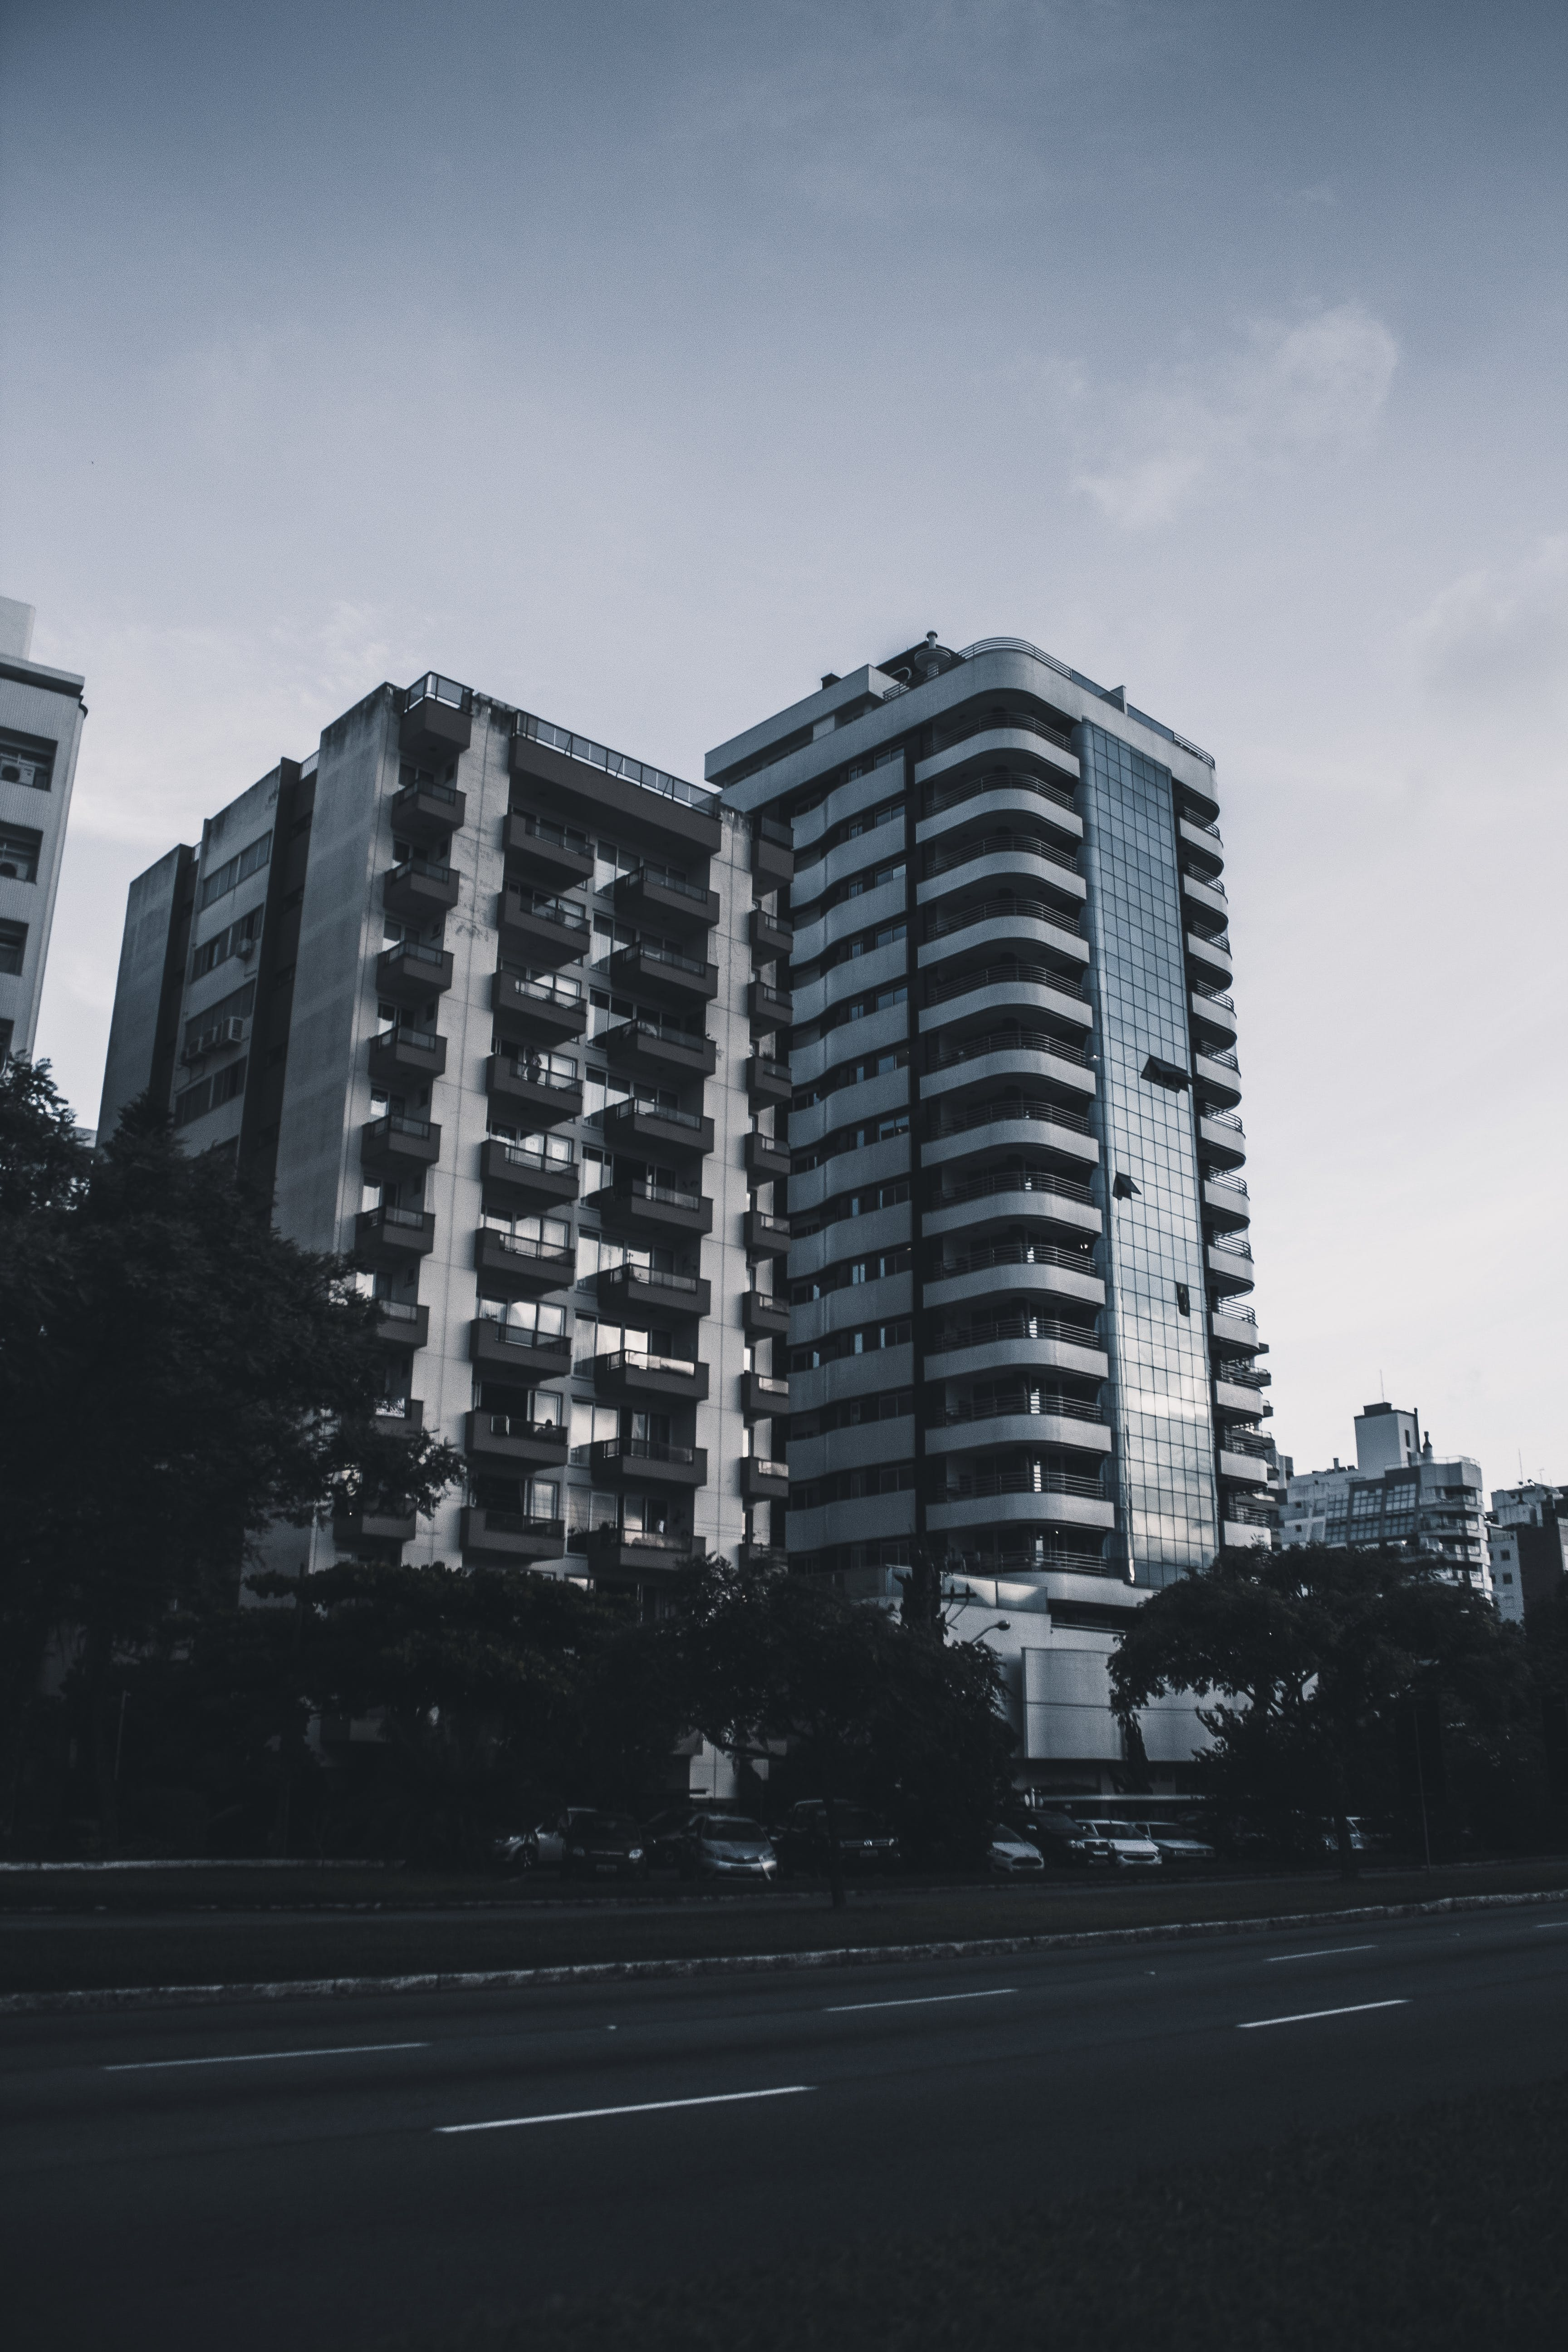 Grayscale Photography of High-rise Building